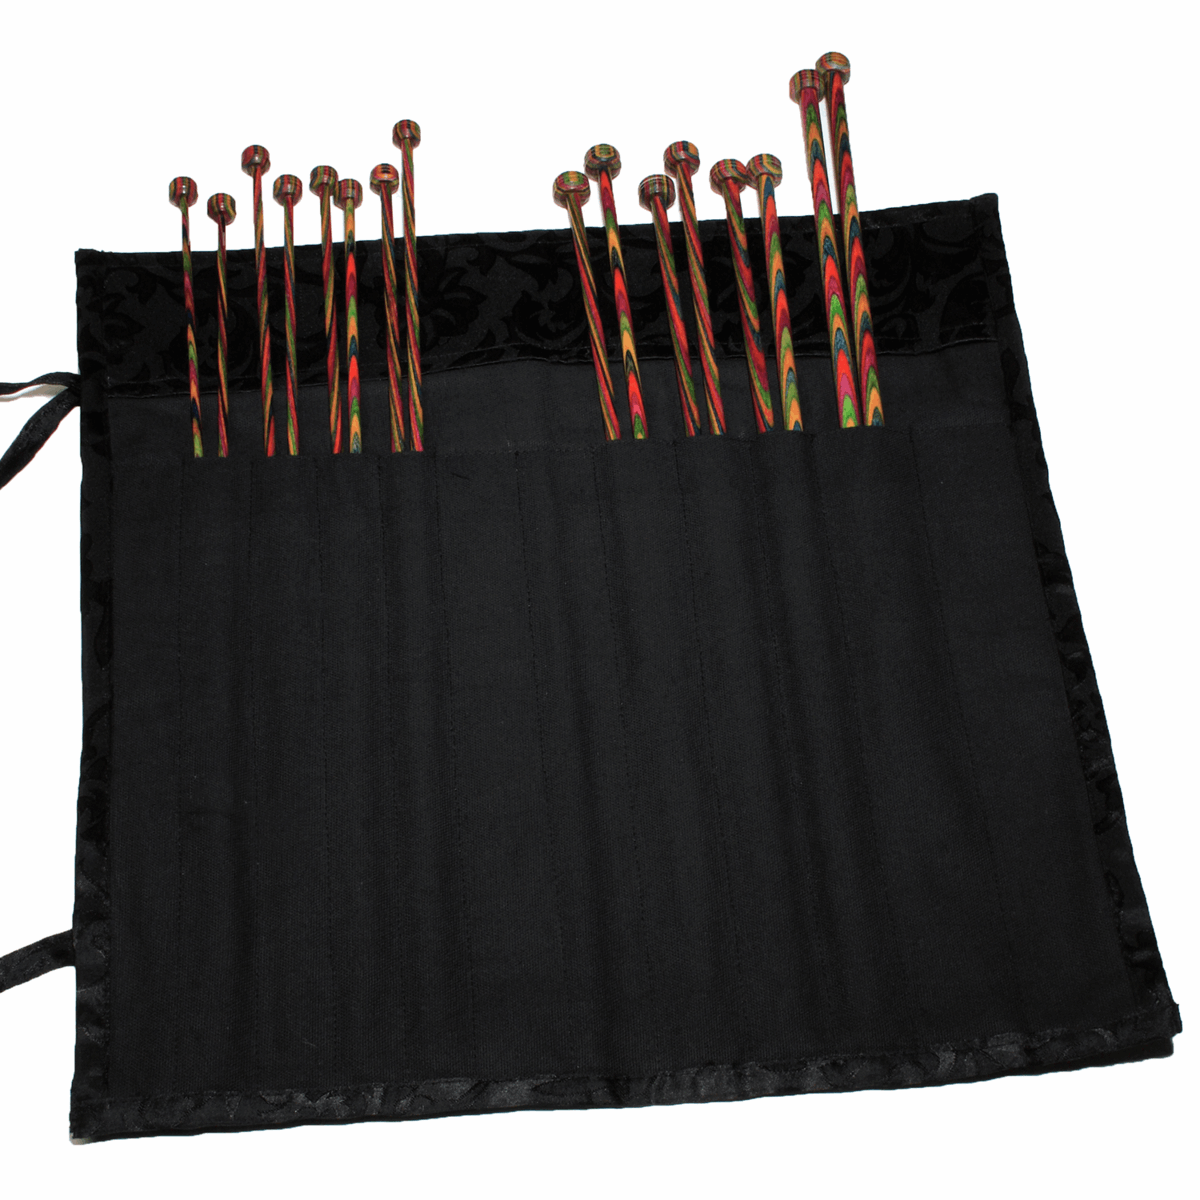 Picture of Fabric Knitting Pin Case: Black Jacquard Wrap-Around: 30cm